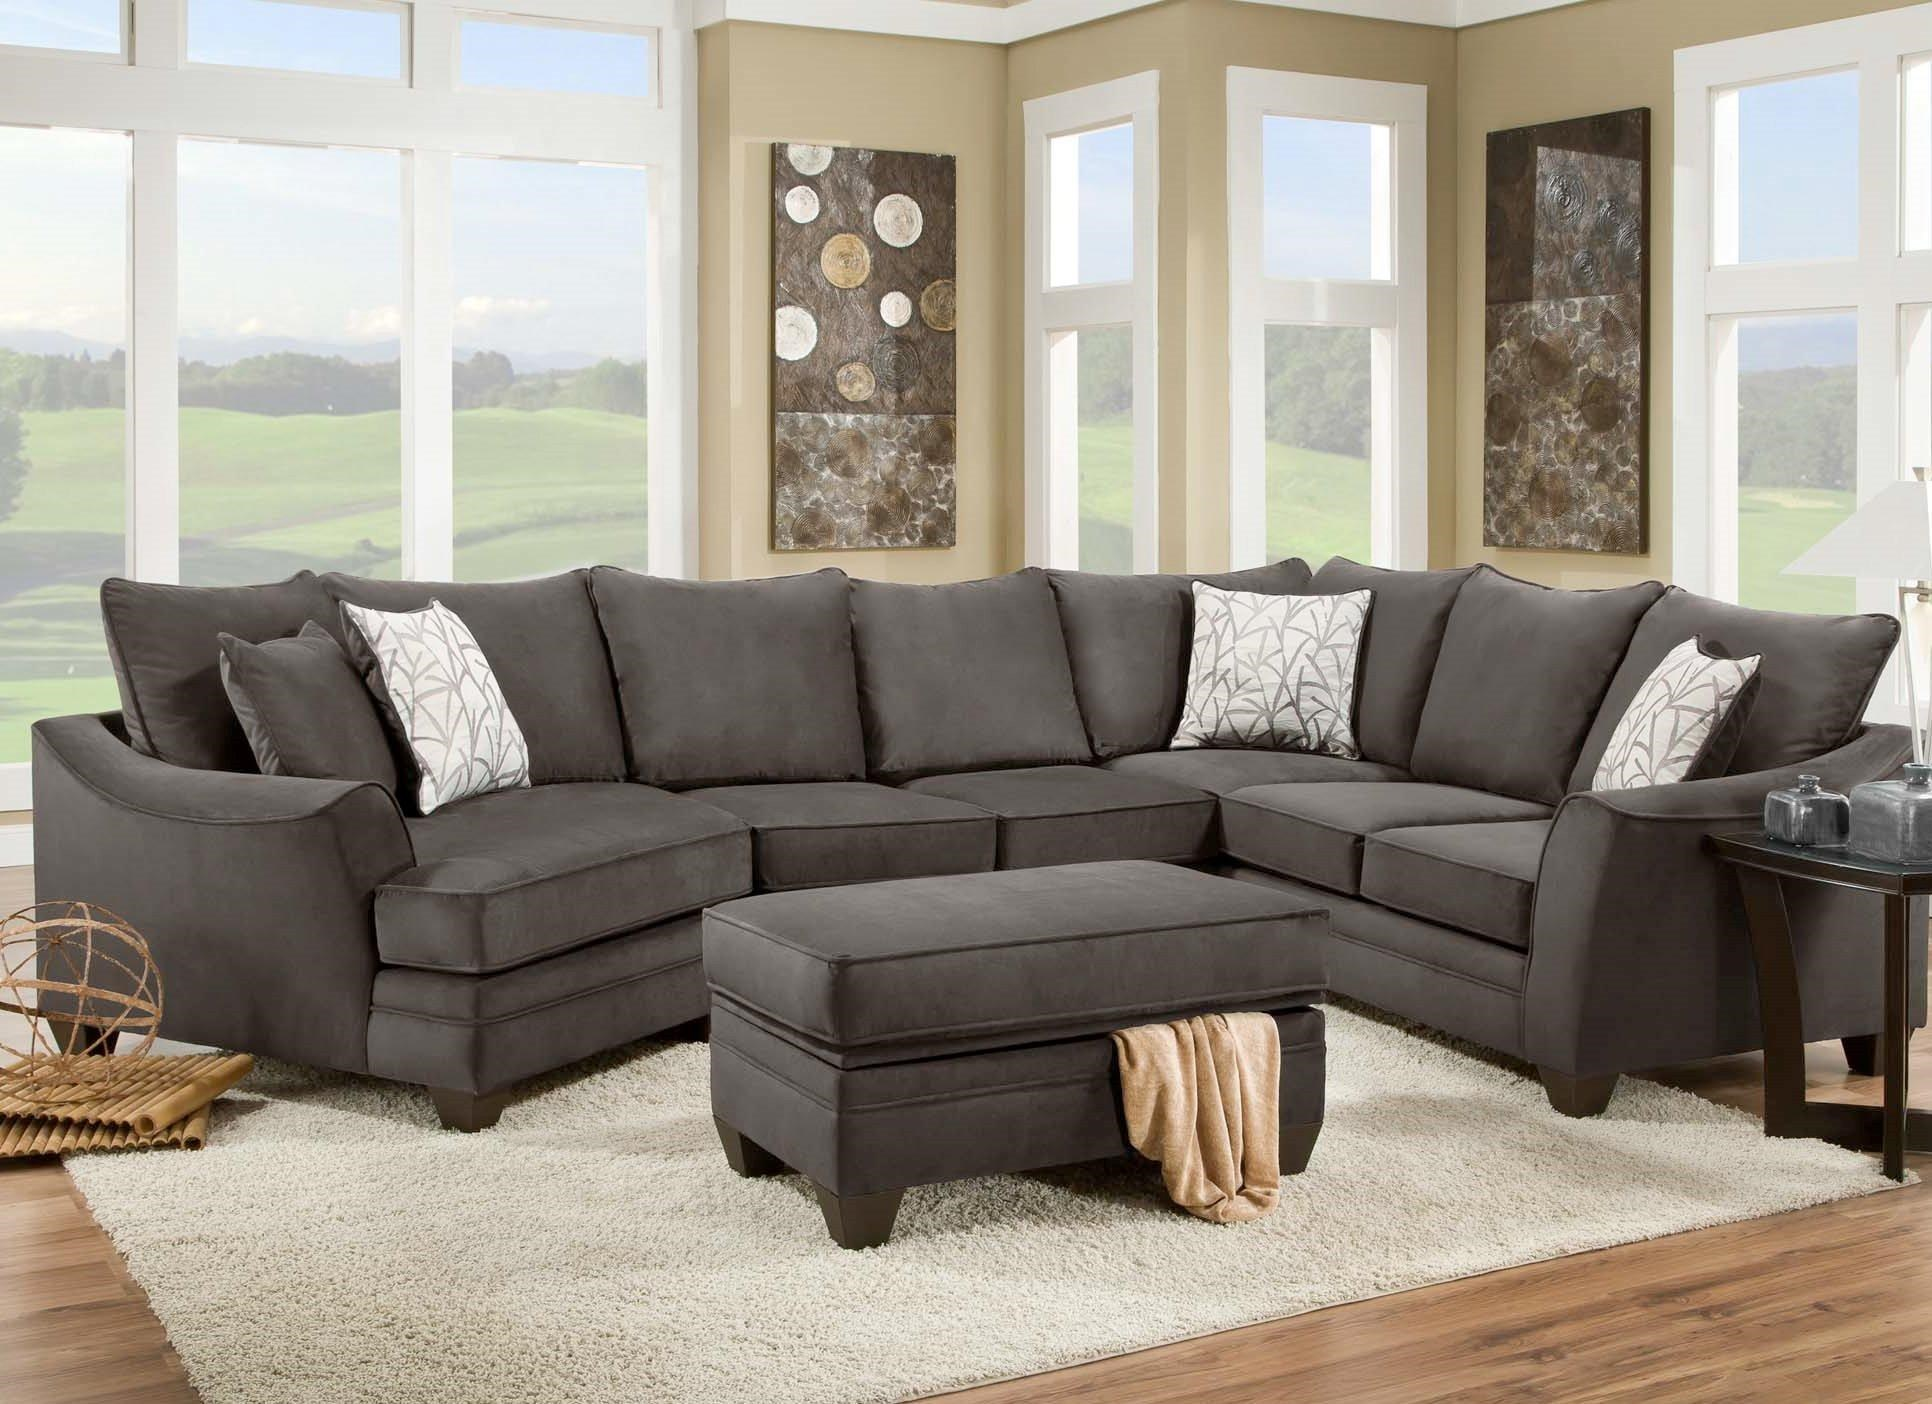 American Furniture 3810 Sectional Sofa That Seats 5 With